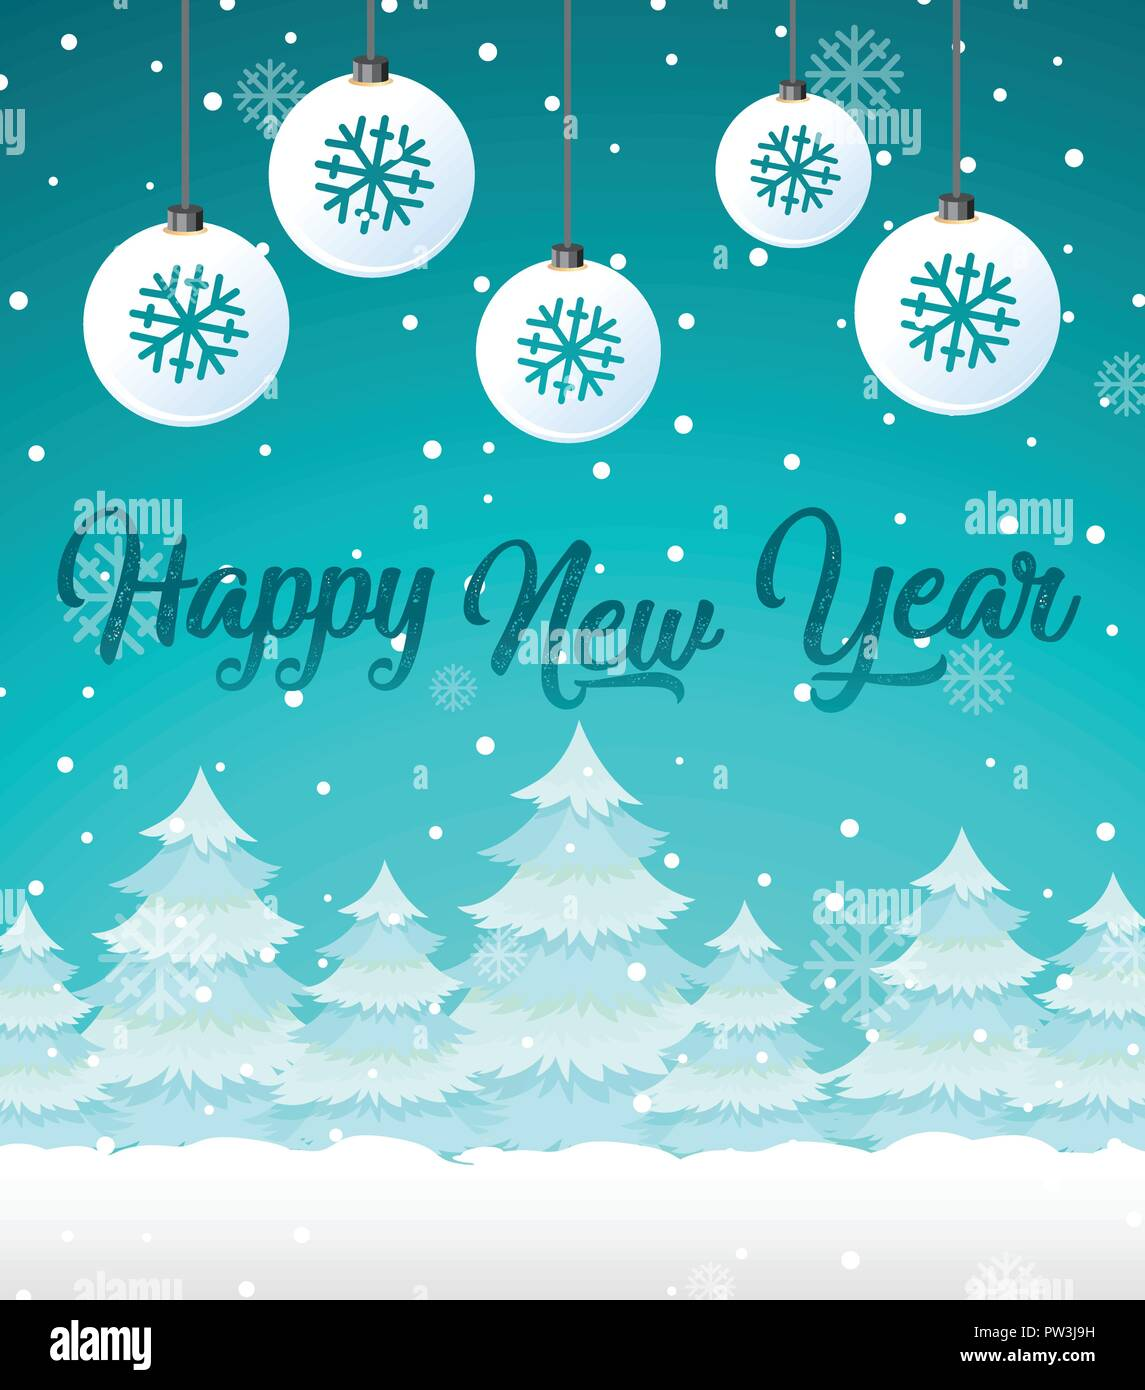 happy new year card template illustration